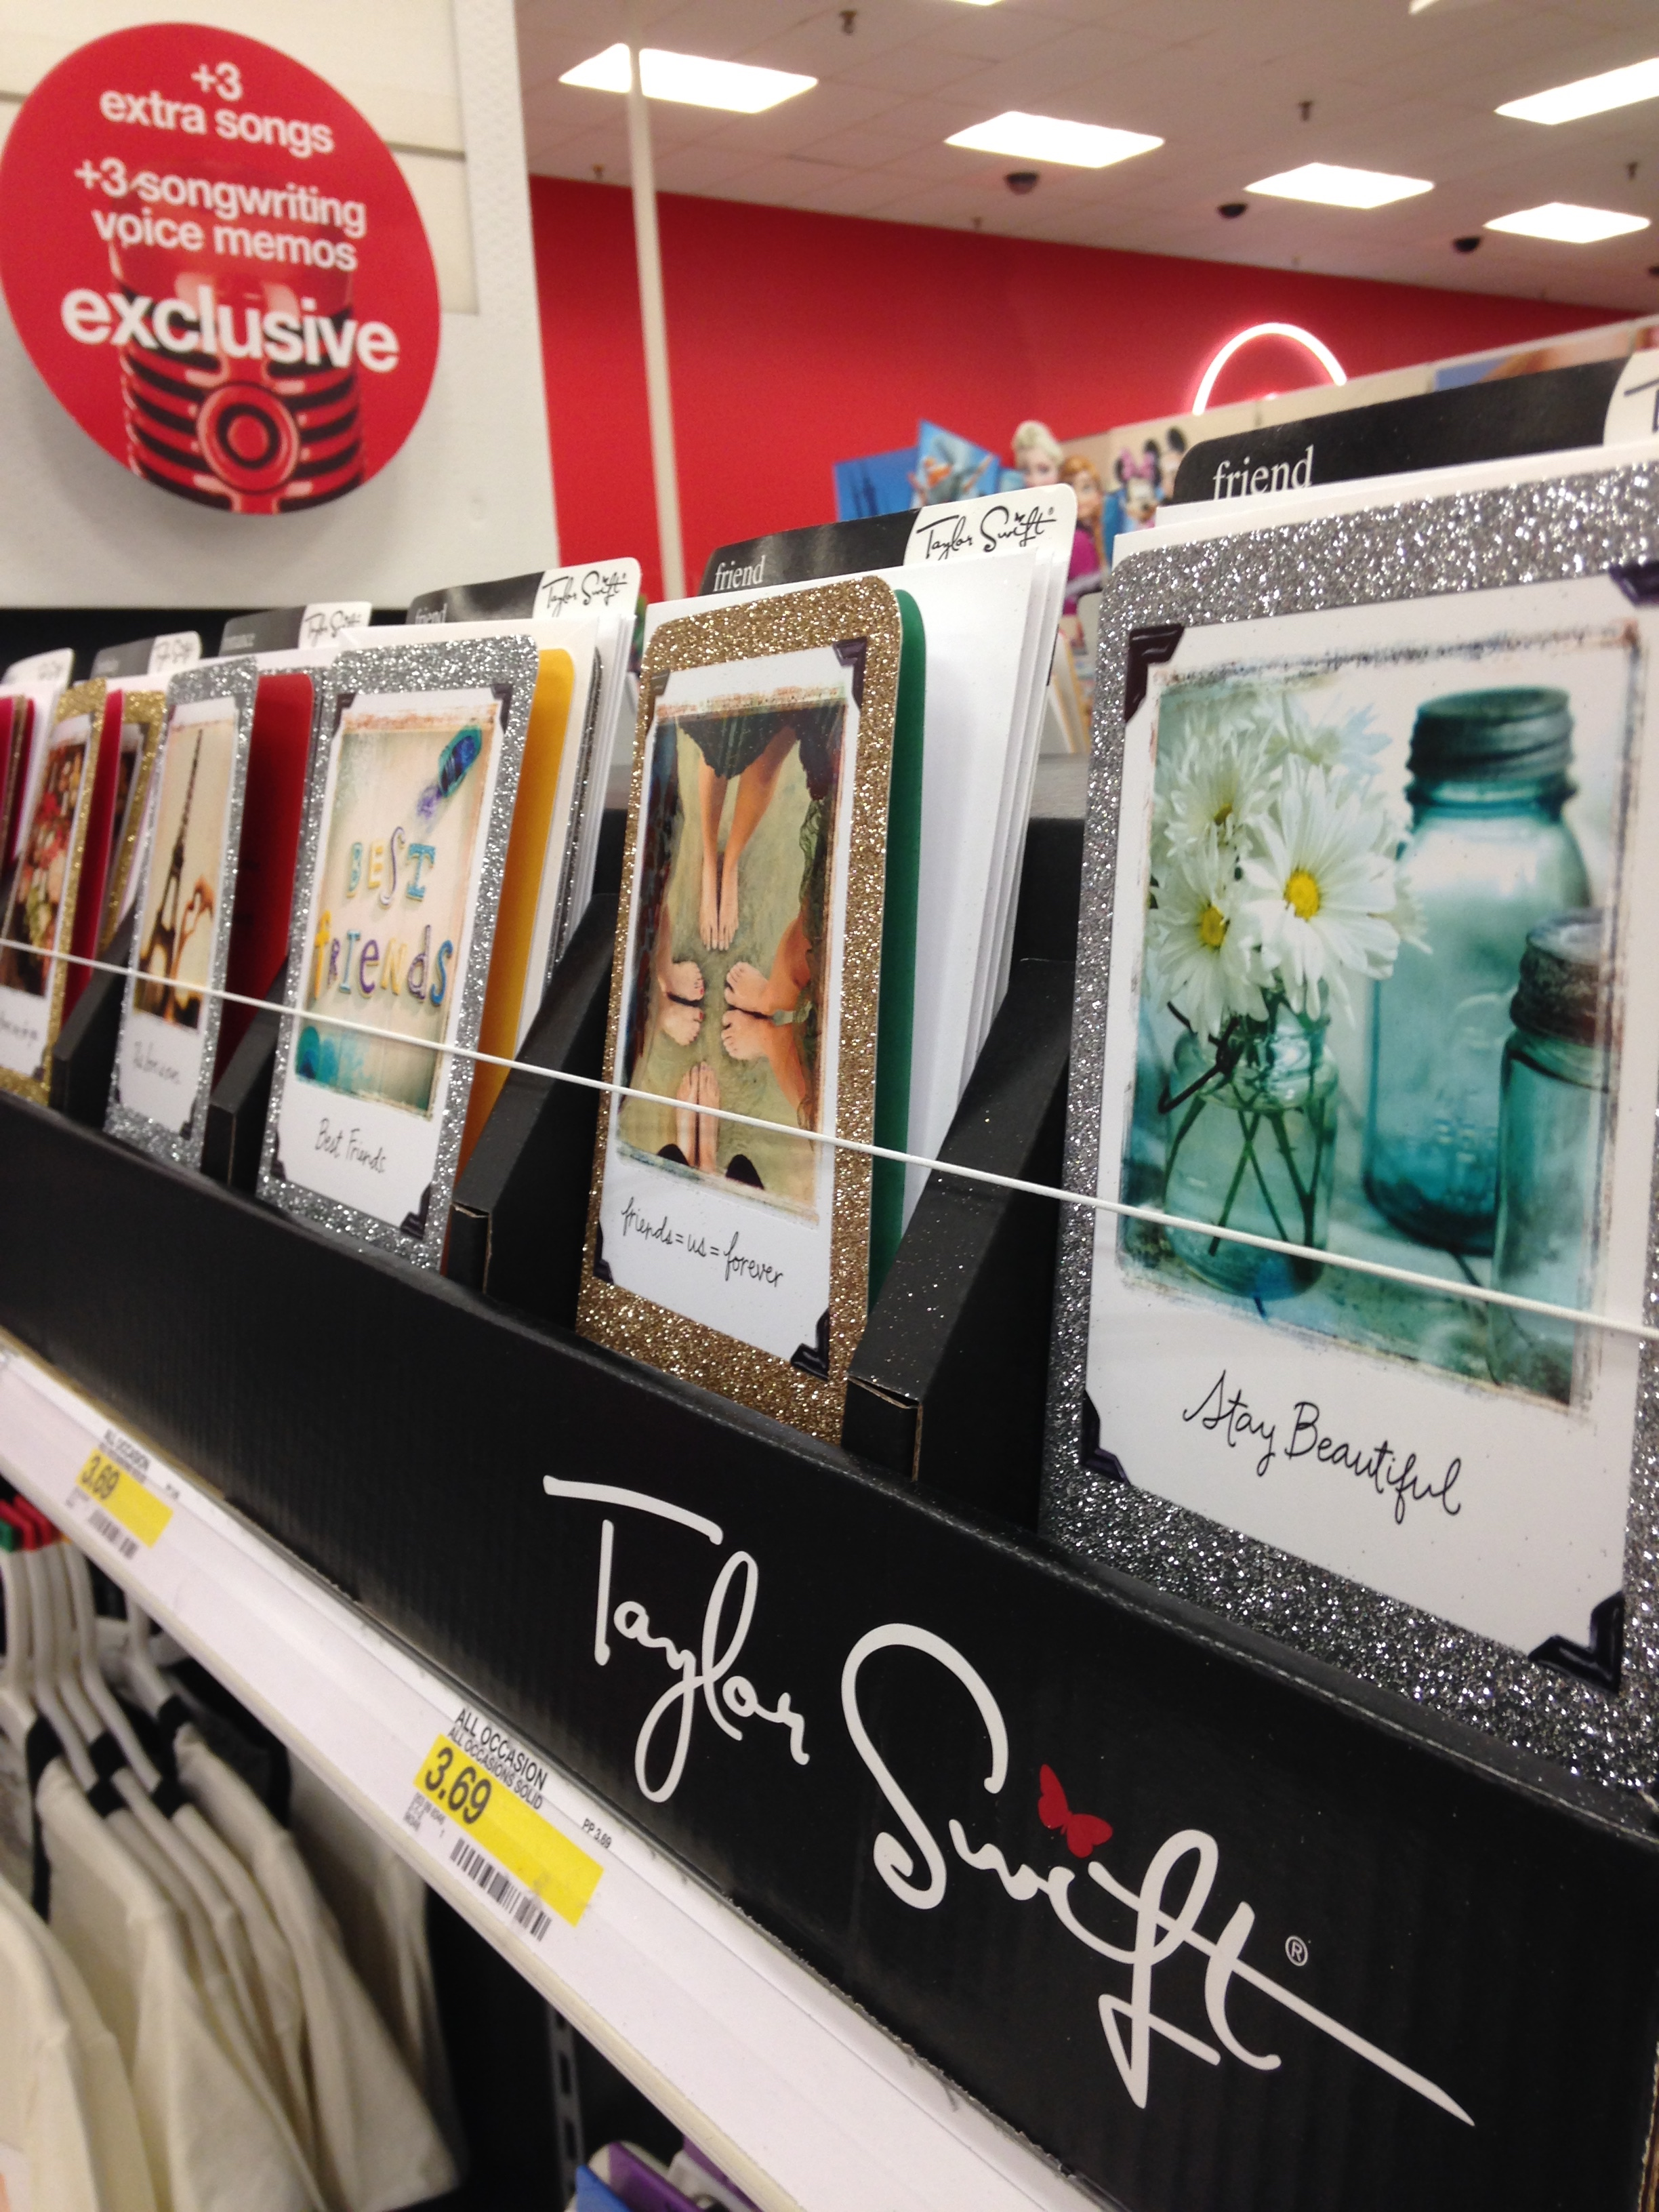 Yes Taylor Swift Has Her Own Line Of Cards At Target And She Wants Us All To Stay Beautiful